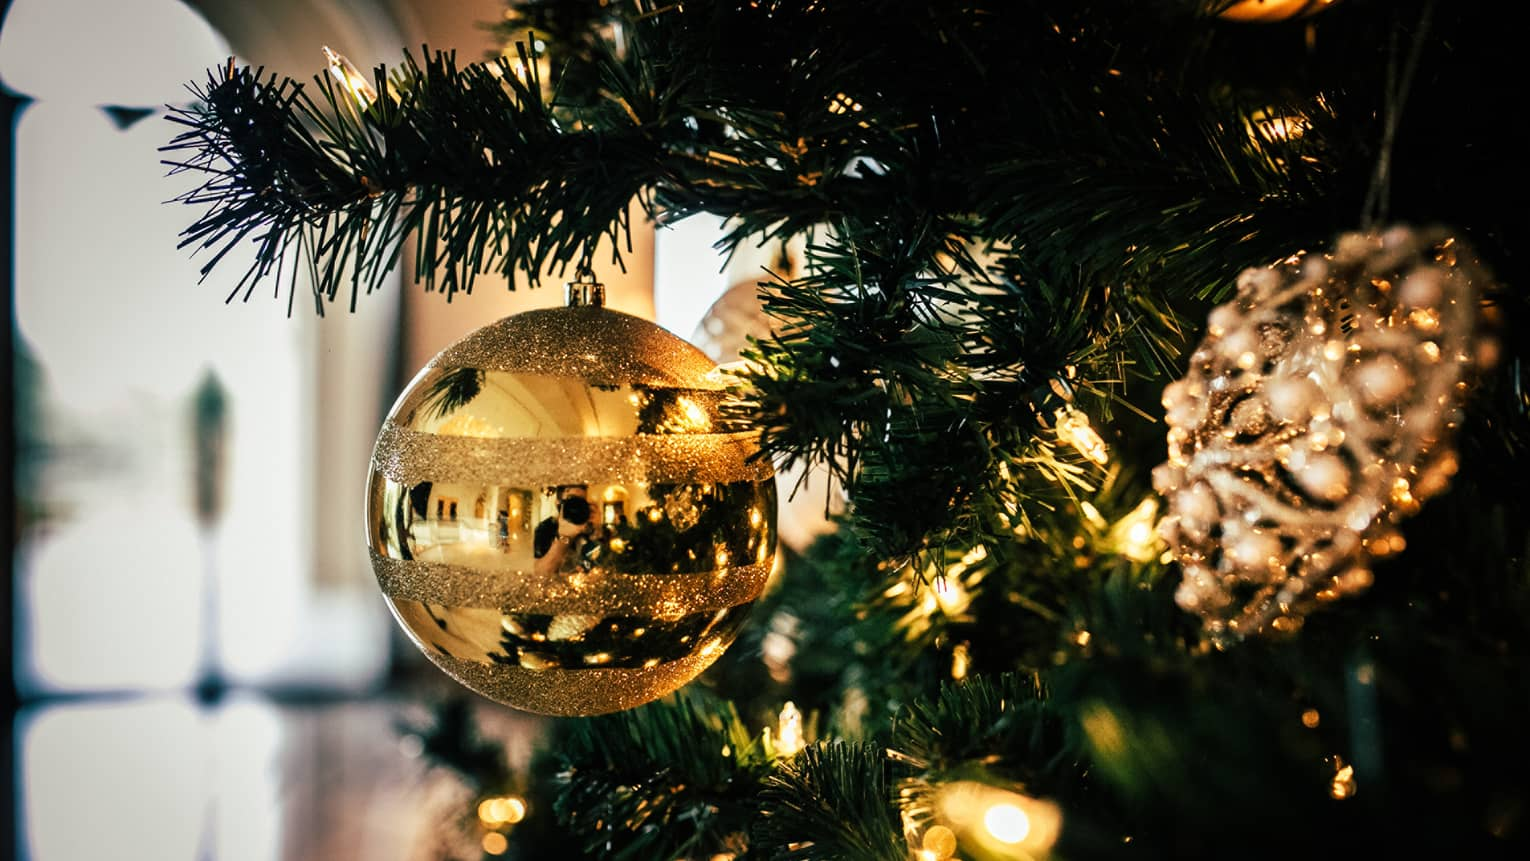 A close up of a gold, reflective ornament on a christmas tree